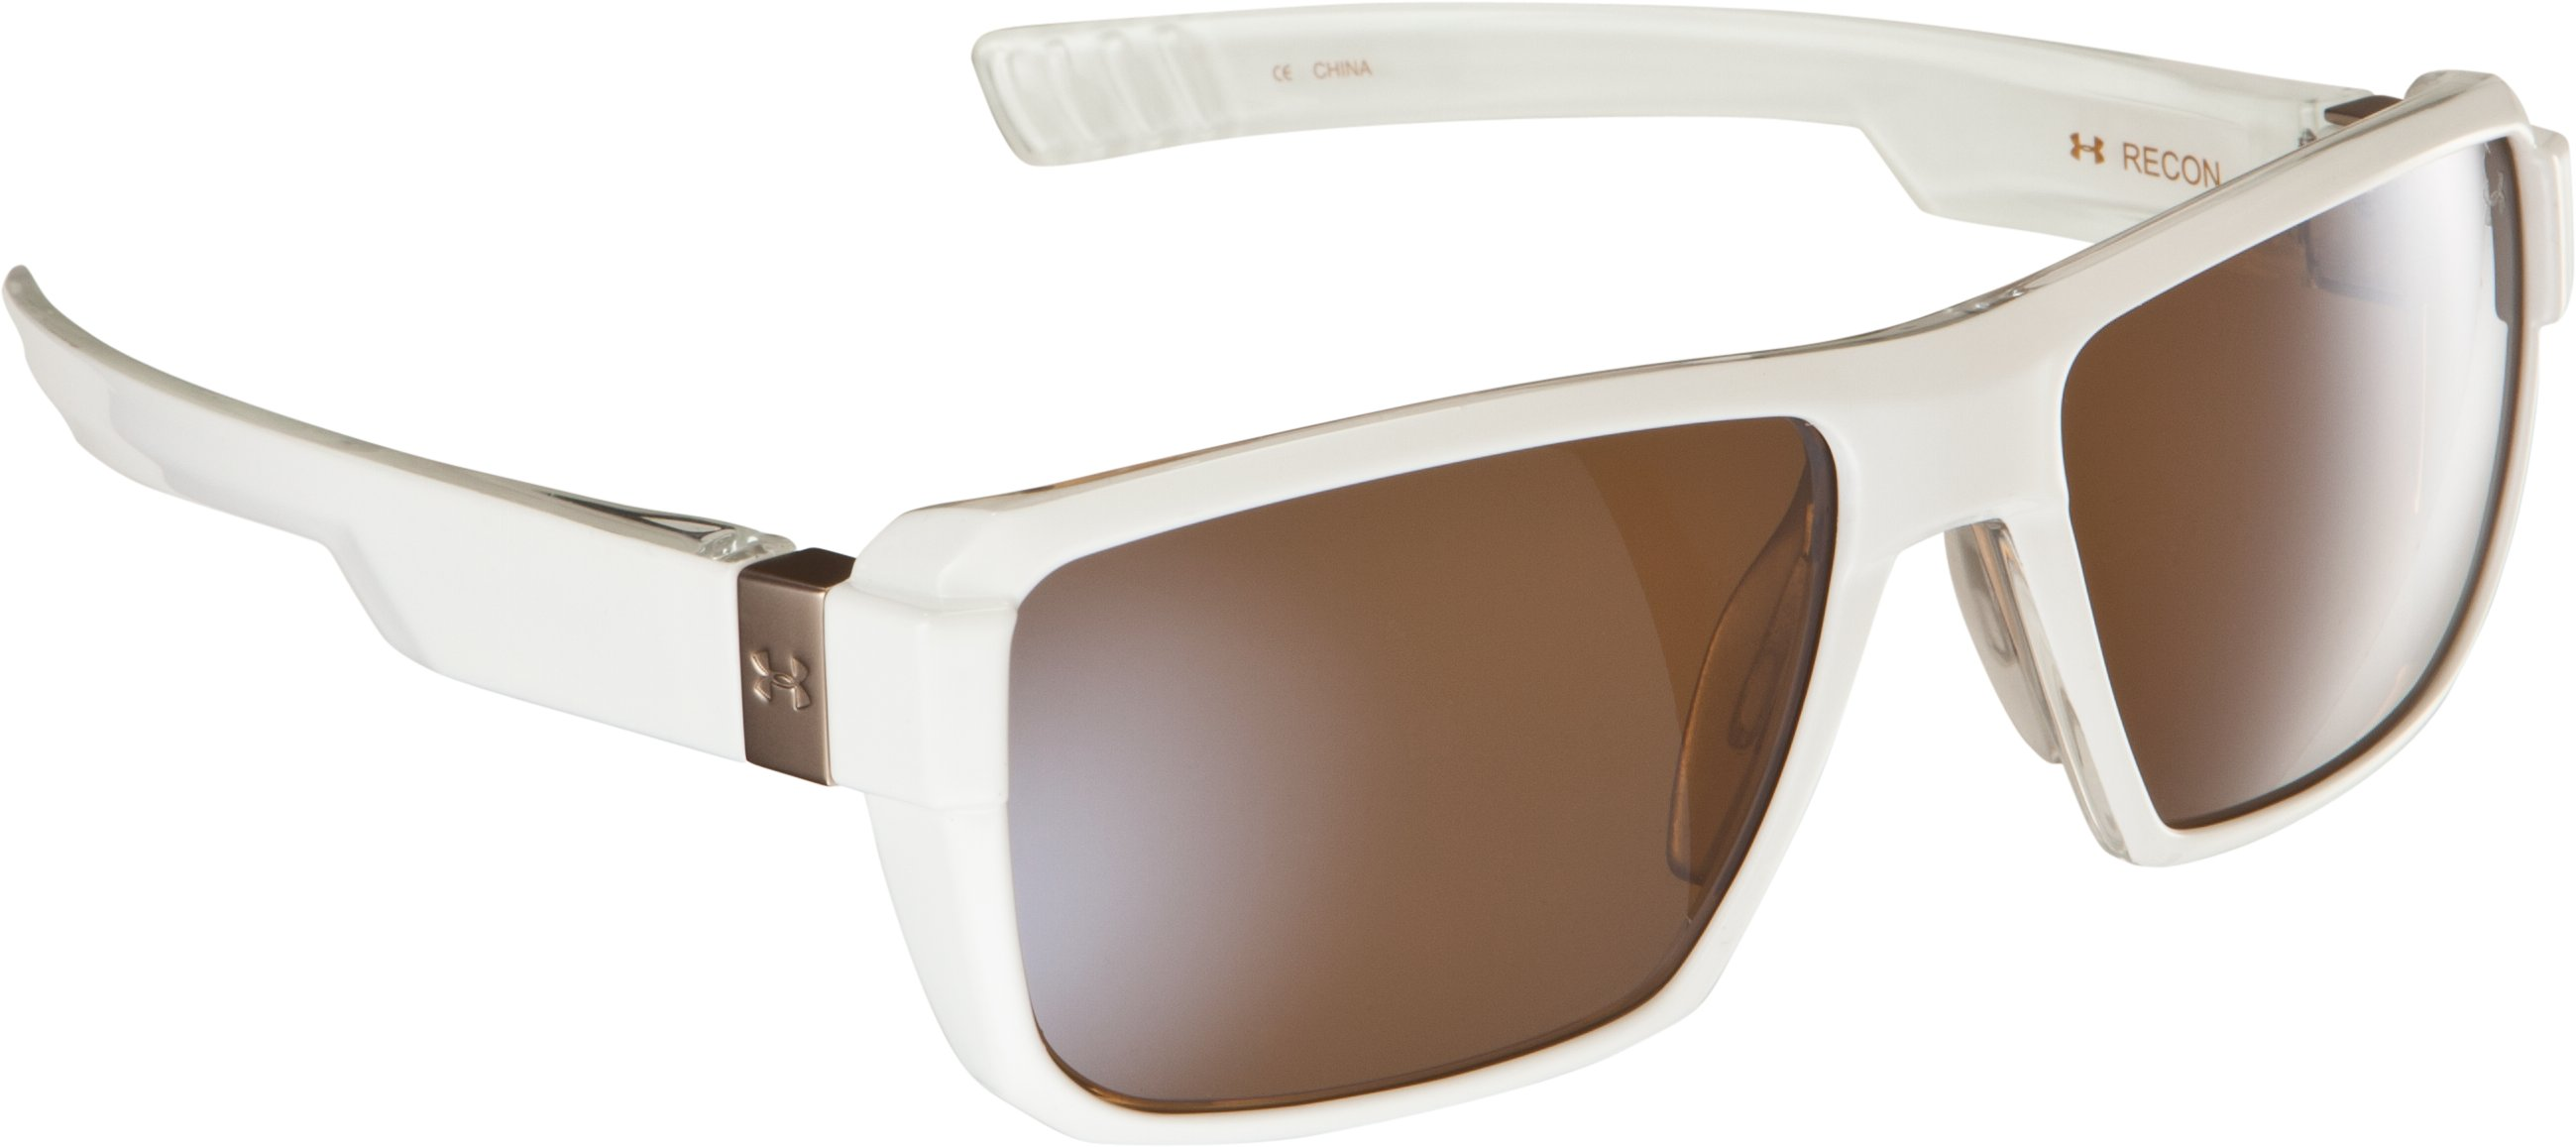 UA Recon Multiflection™ Sunglasses, Crystal Clear